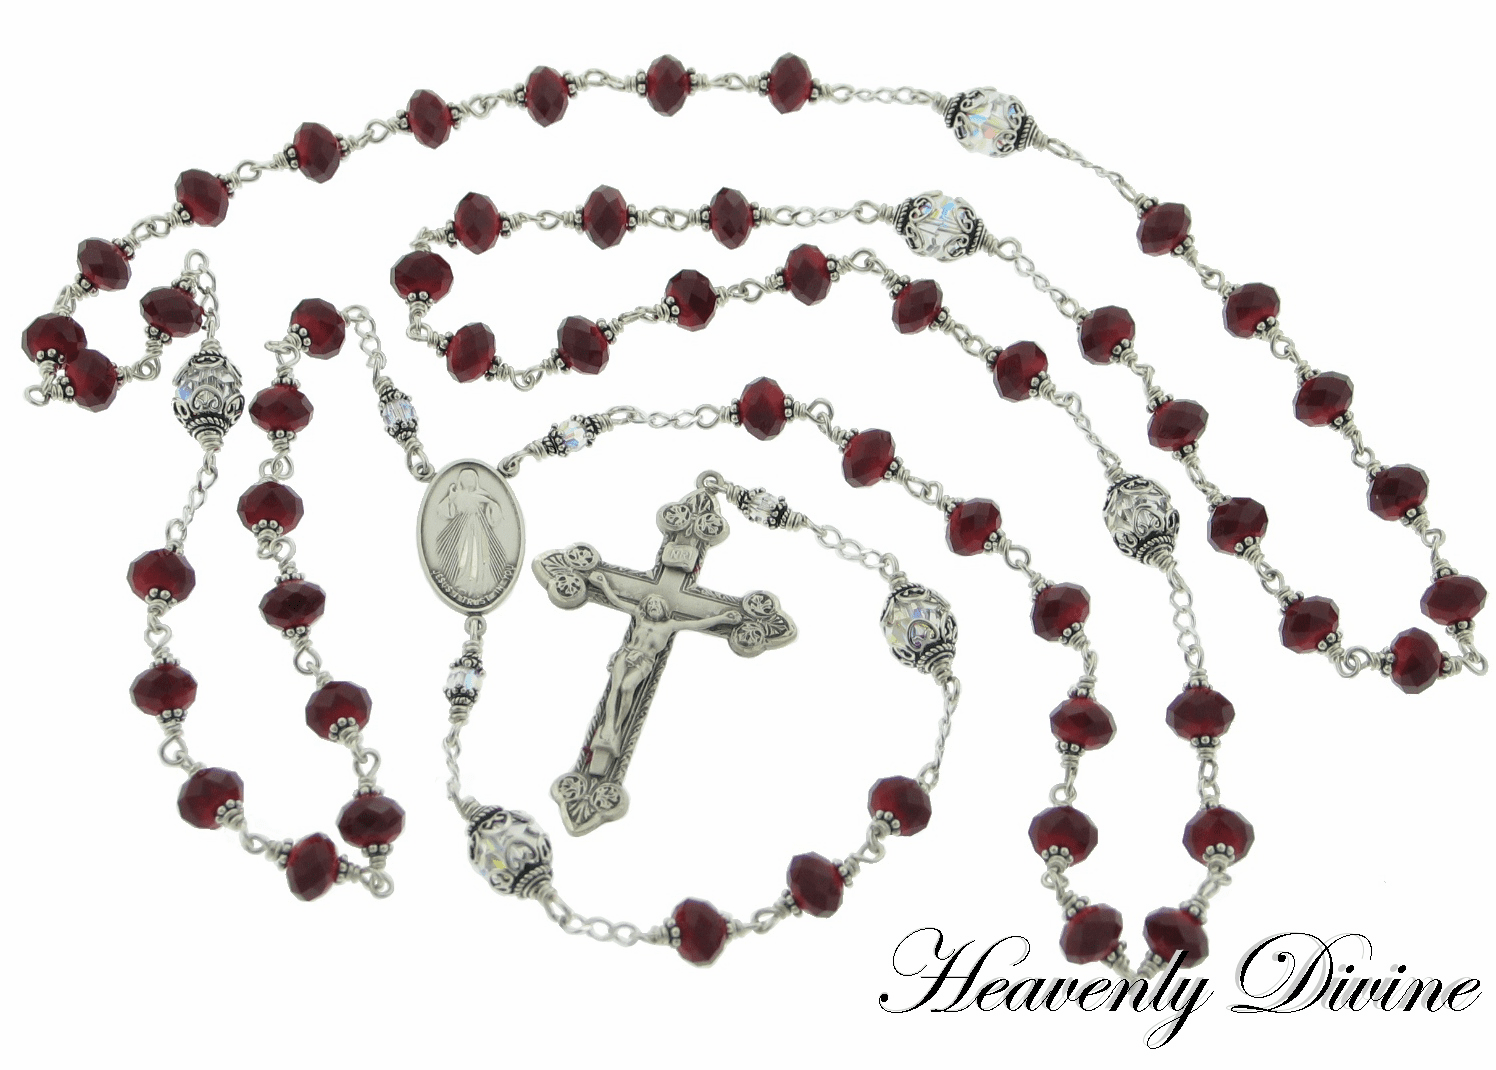 Handmade Wire Wrapped Divine Mercy Rosary Chaplet by Heavenly Divine